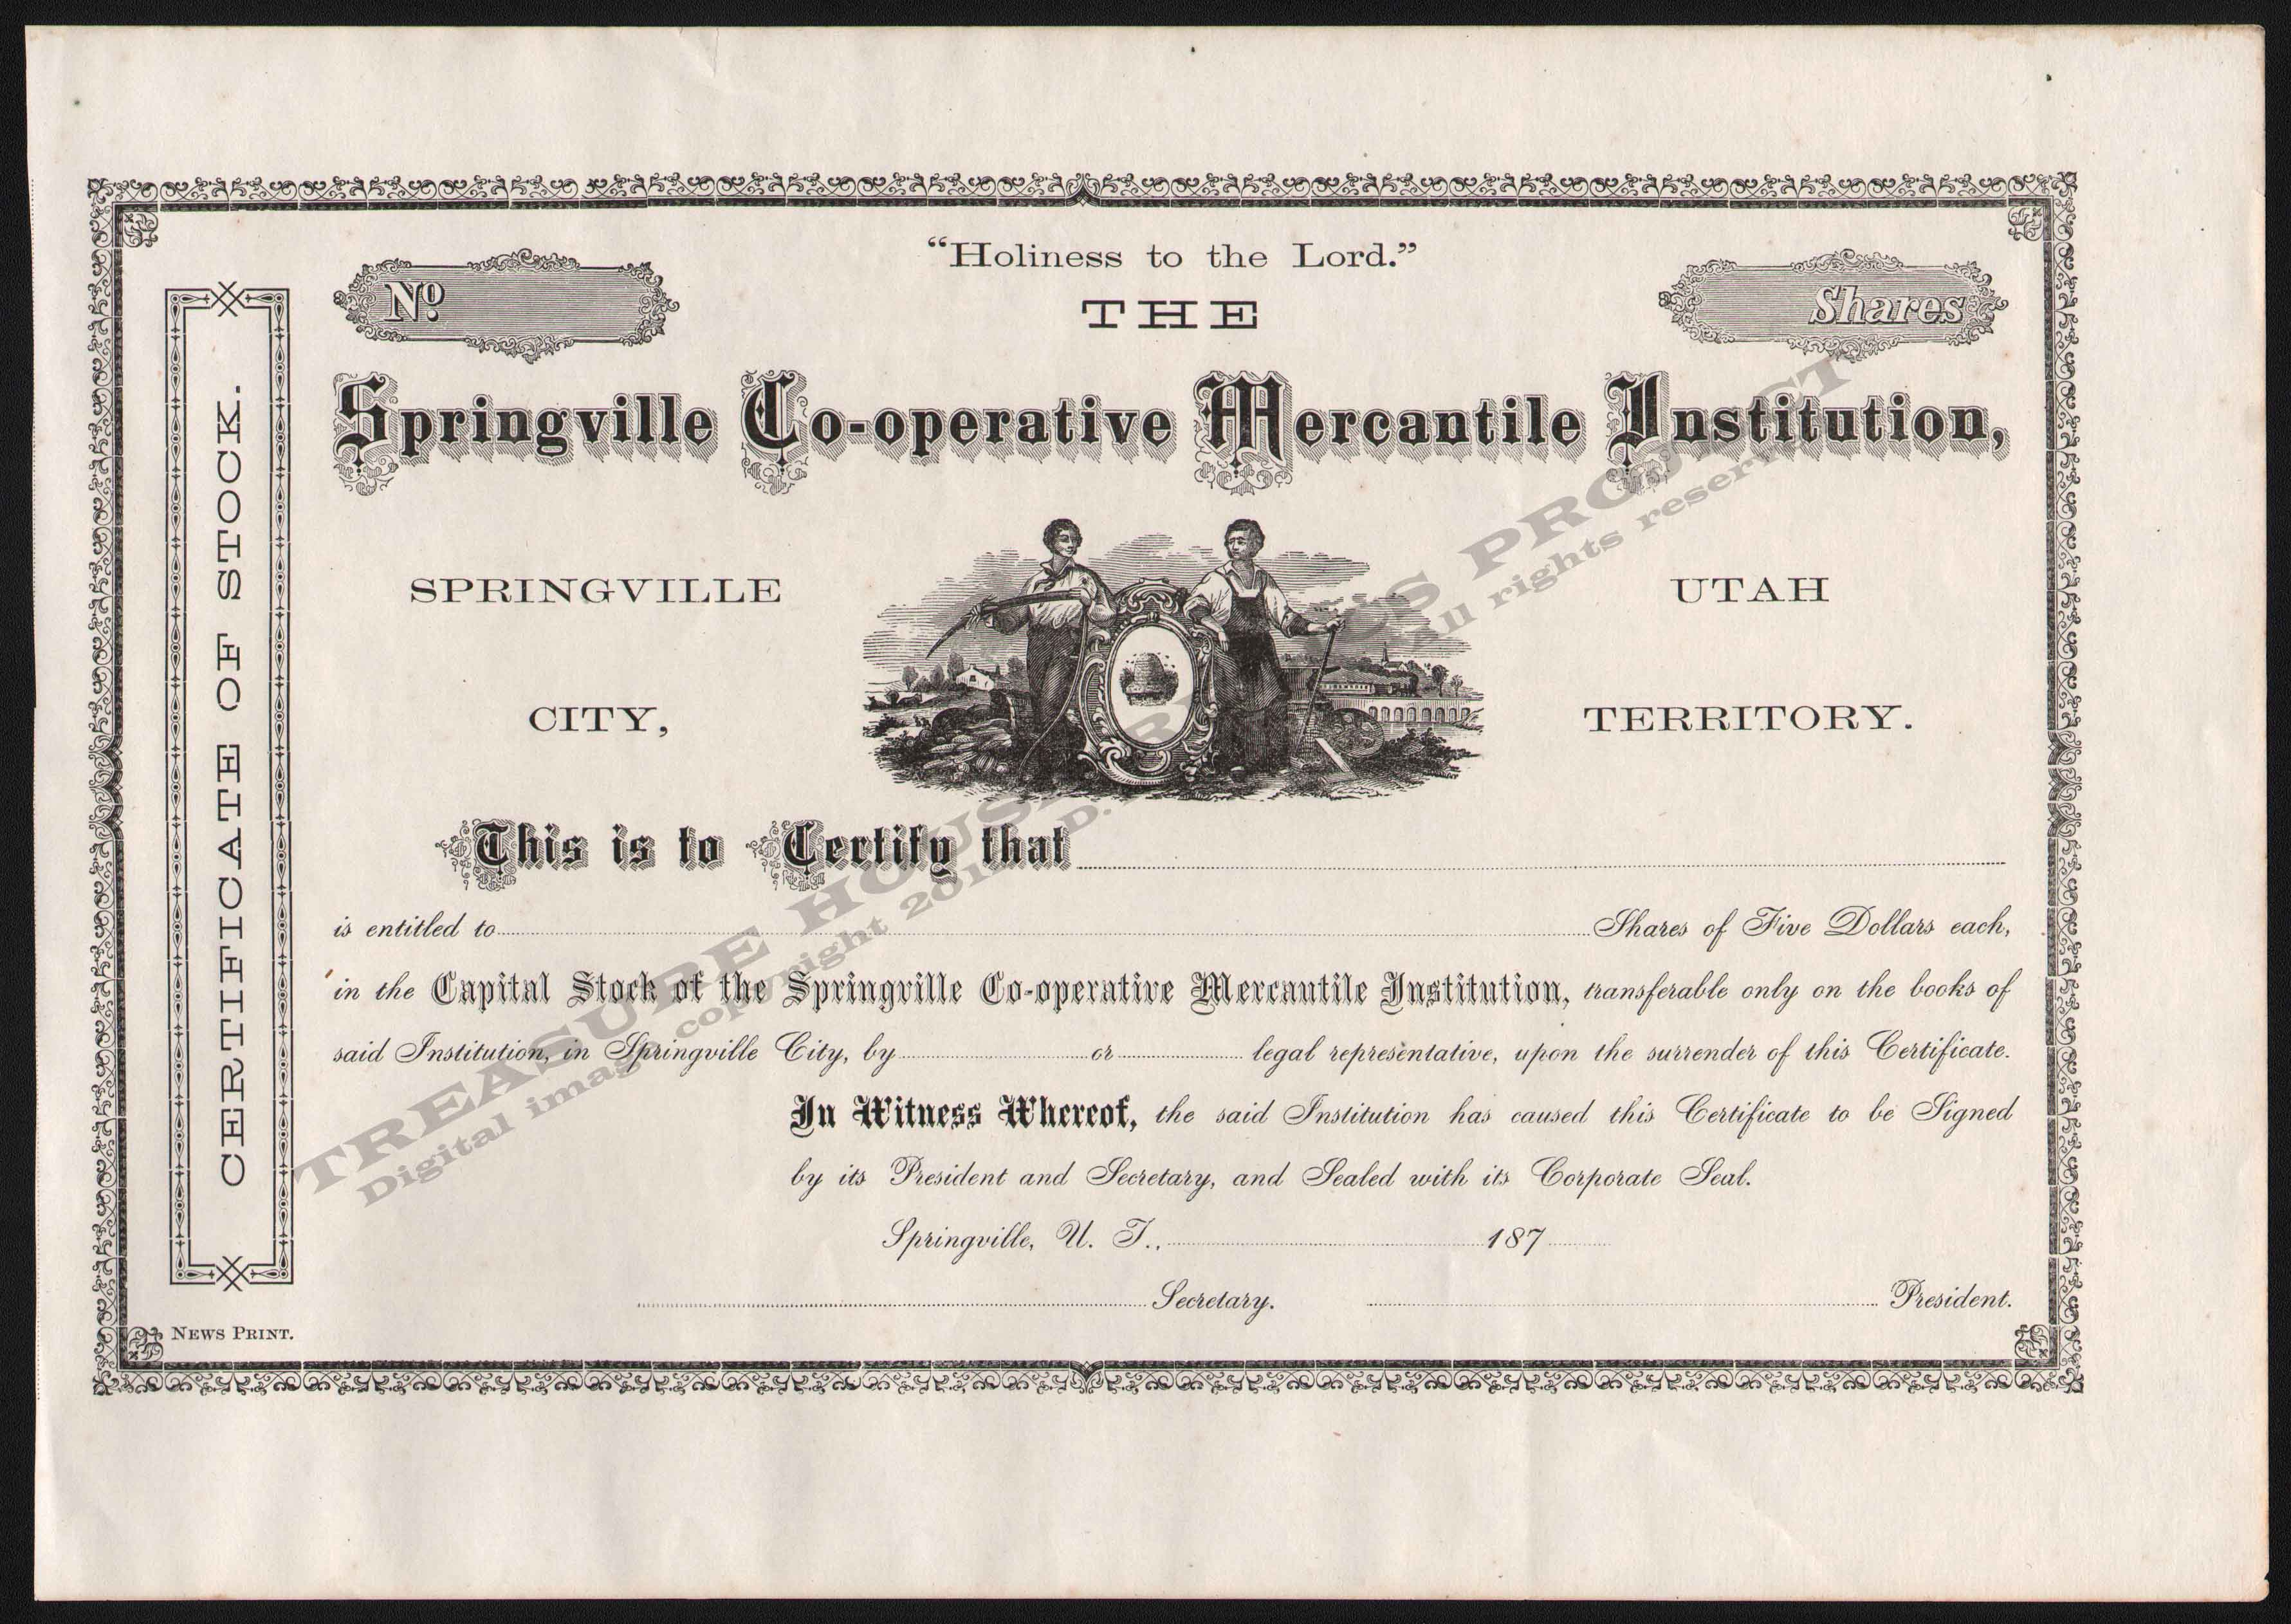 LETTERHEAD/ARCHIVE_14366_STOCK_SPRINGVILLE_CO_OPERATIVE_MERCANTILE_INSTITUTION_NN_187X_DSW_300_CROP_EMBOSS.jpg